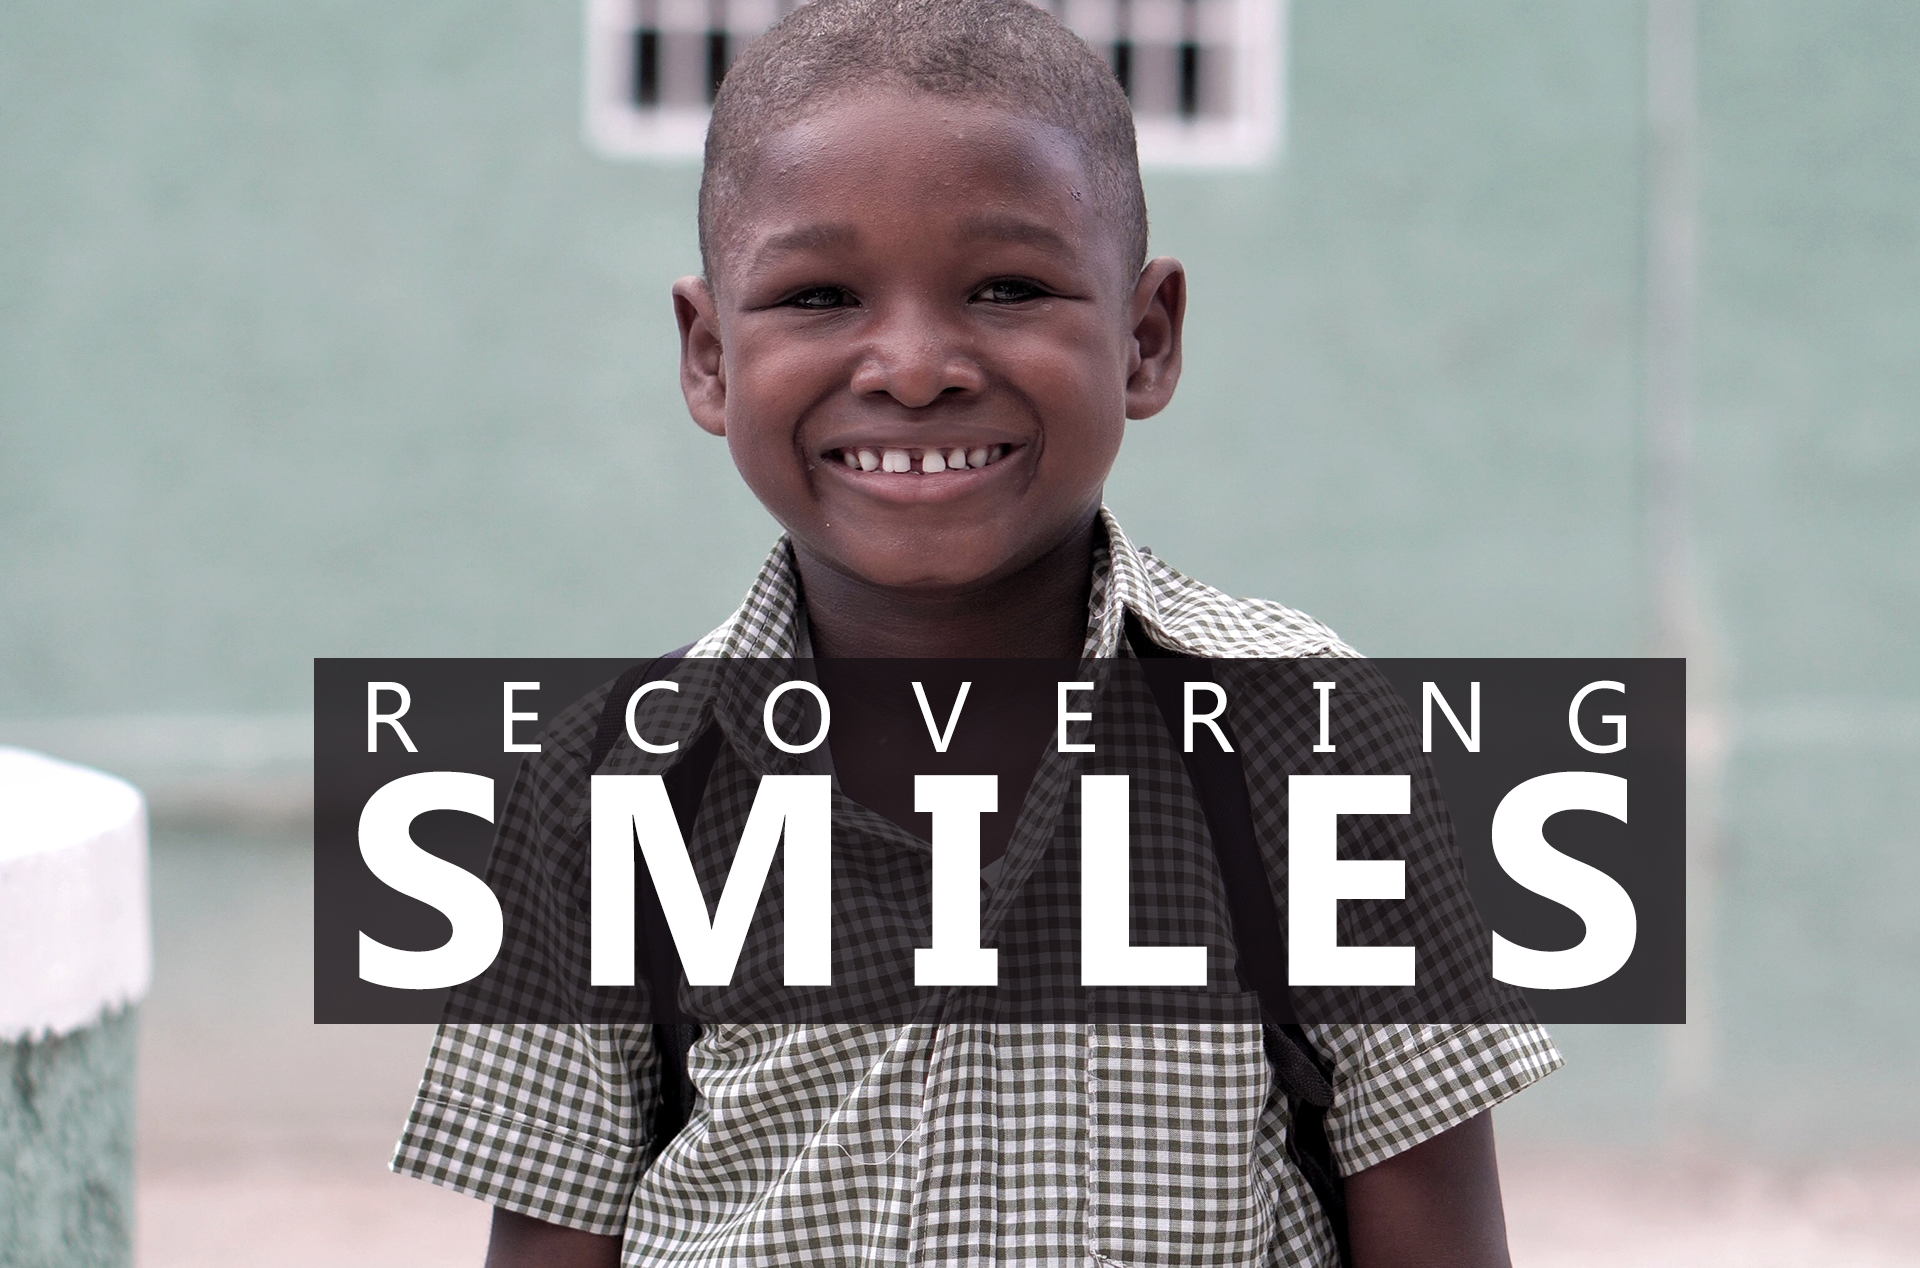 RECOVERING SMILES